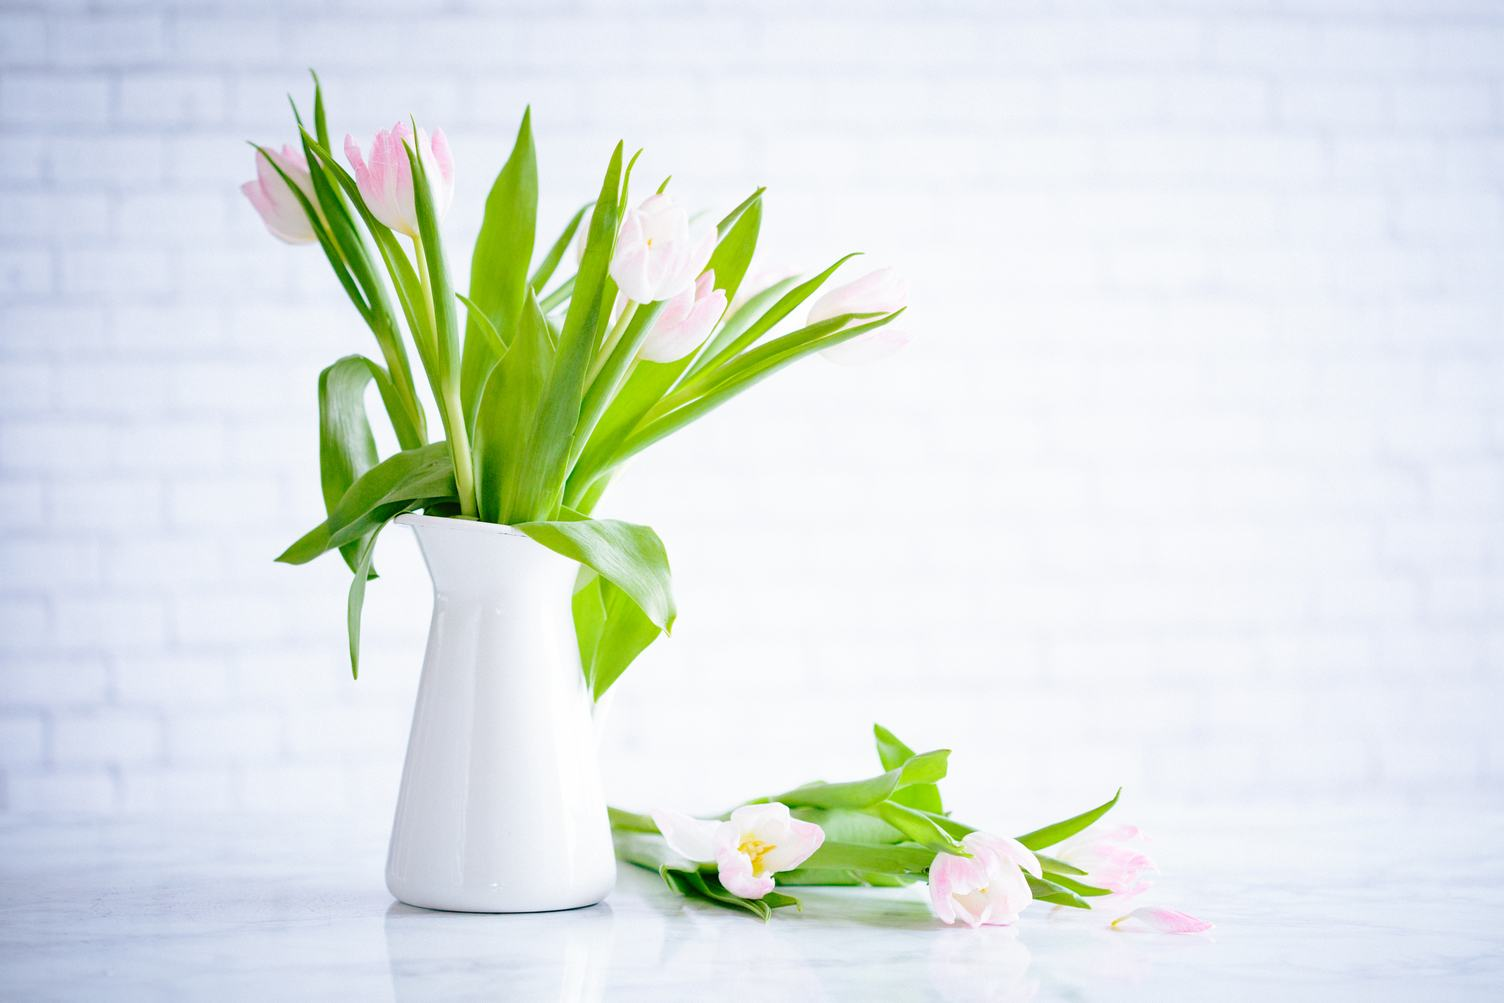 Vase with Bouquet of Tulips on Brick Wall Background